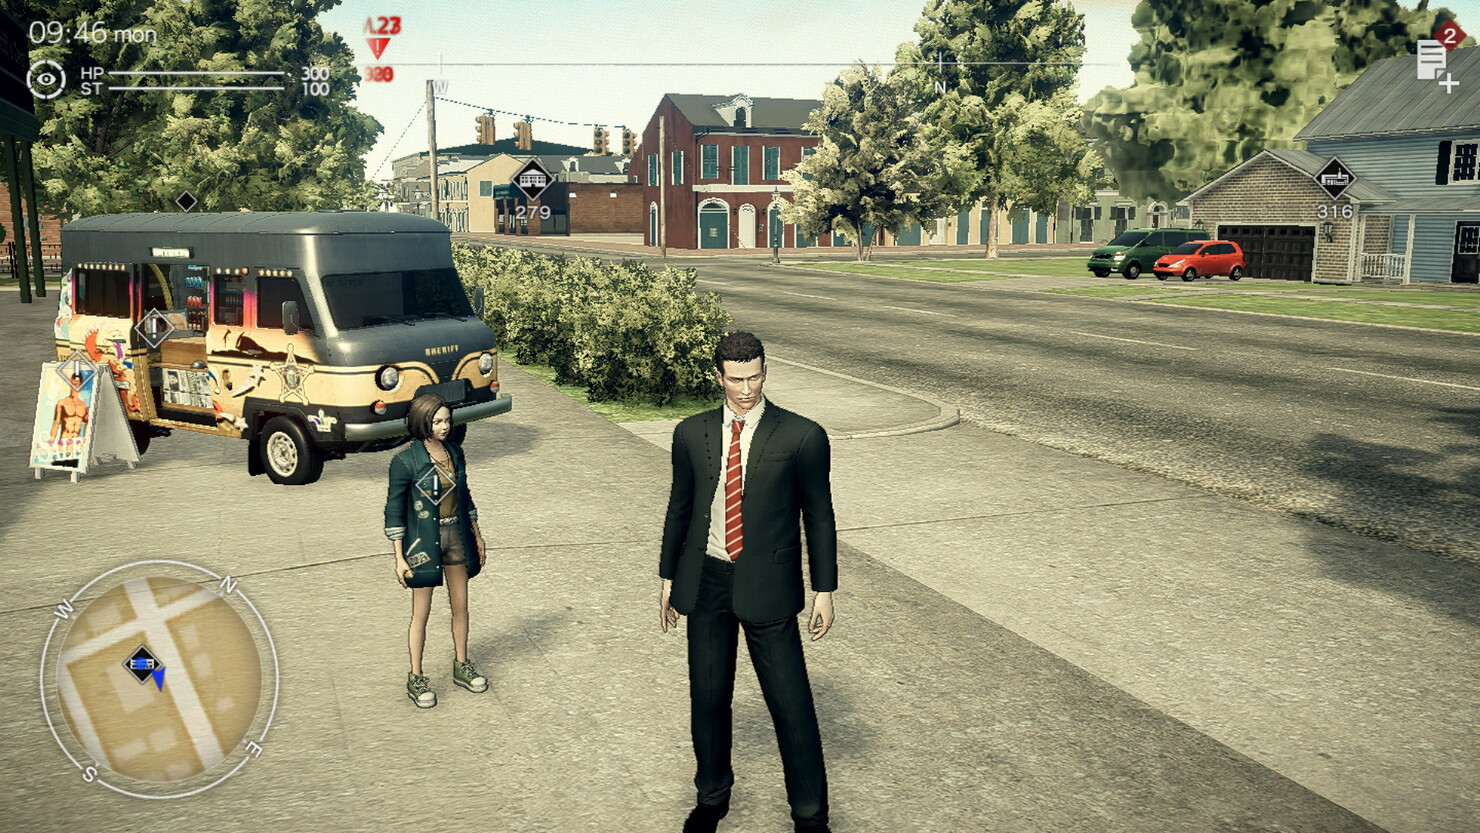 Кадры из игры Deadly Premonition 2: A Blessing in Disguise